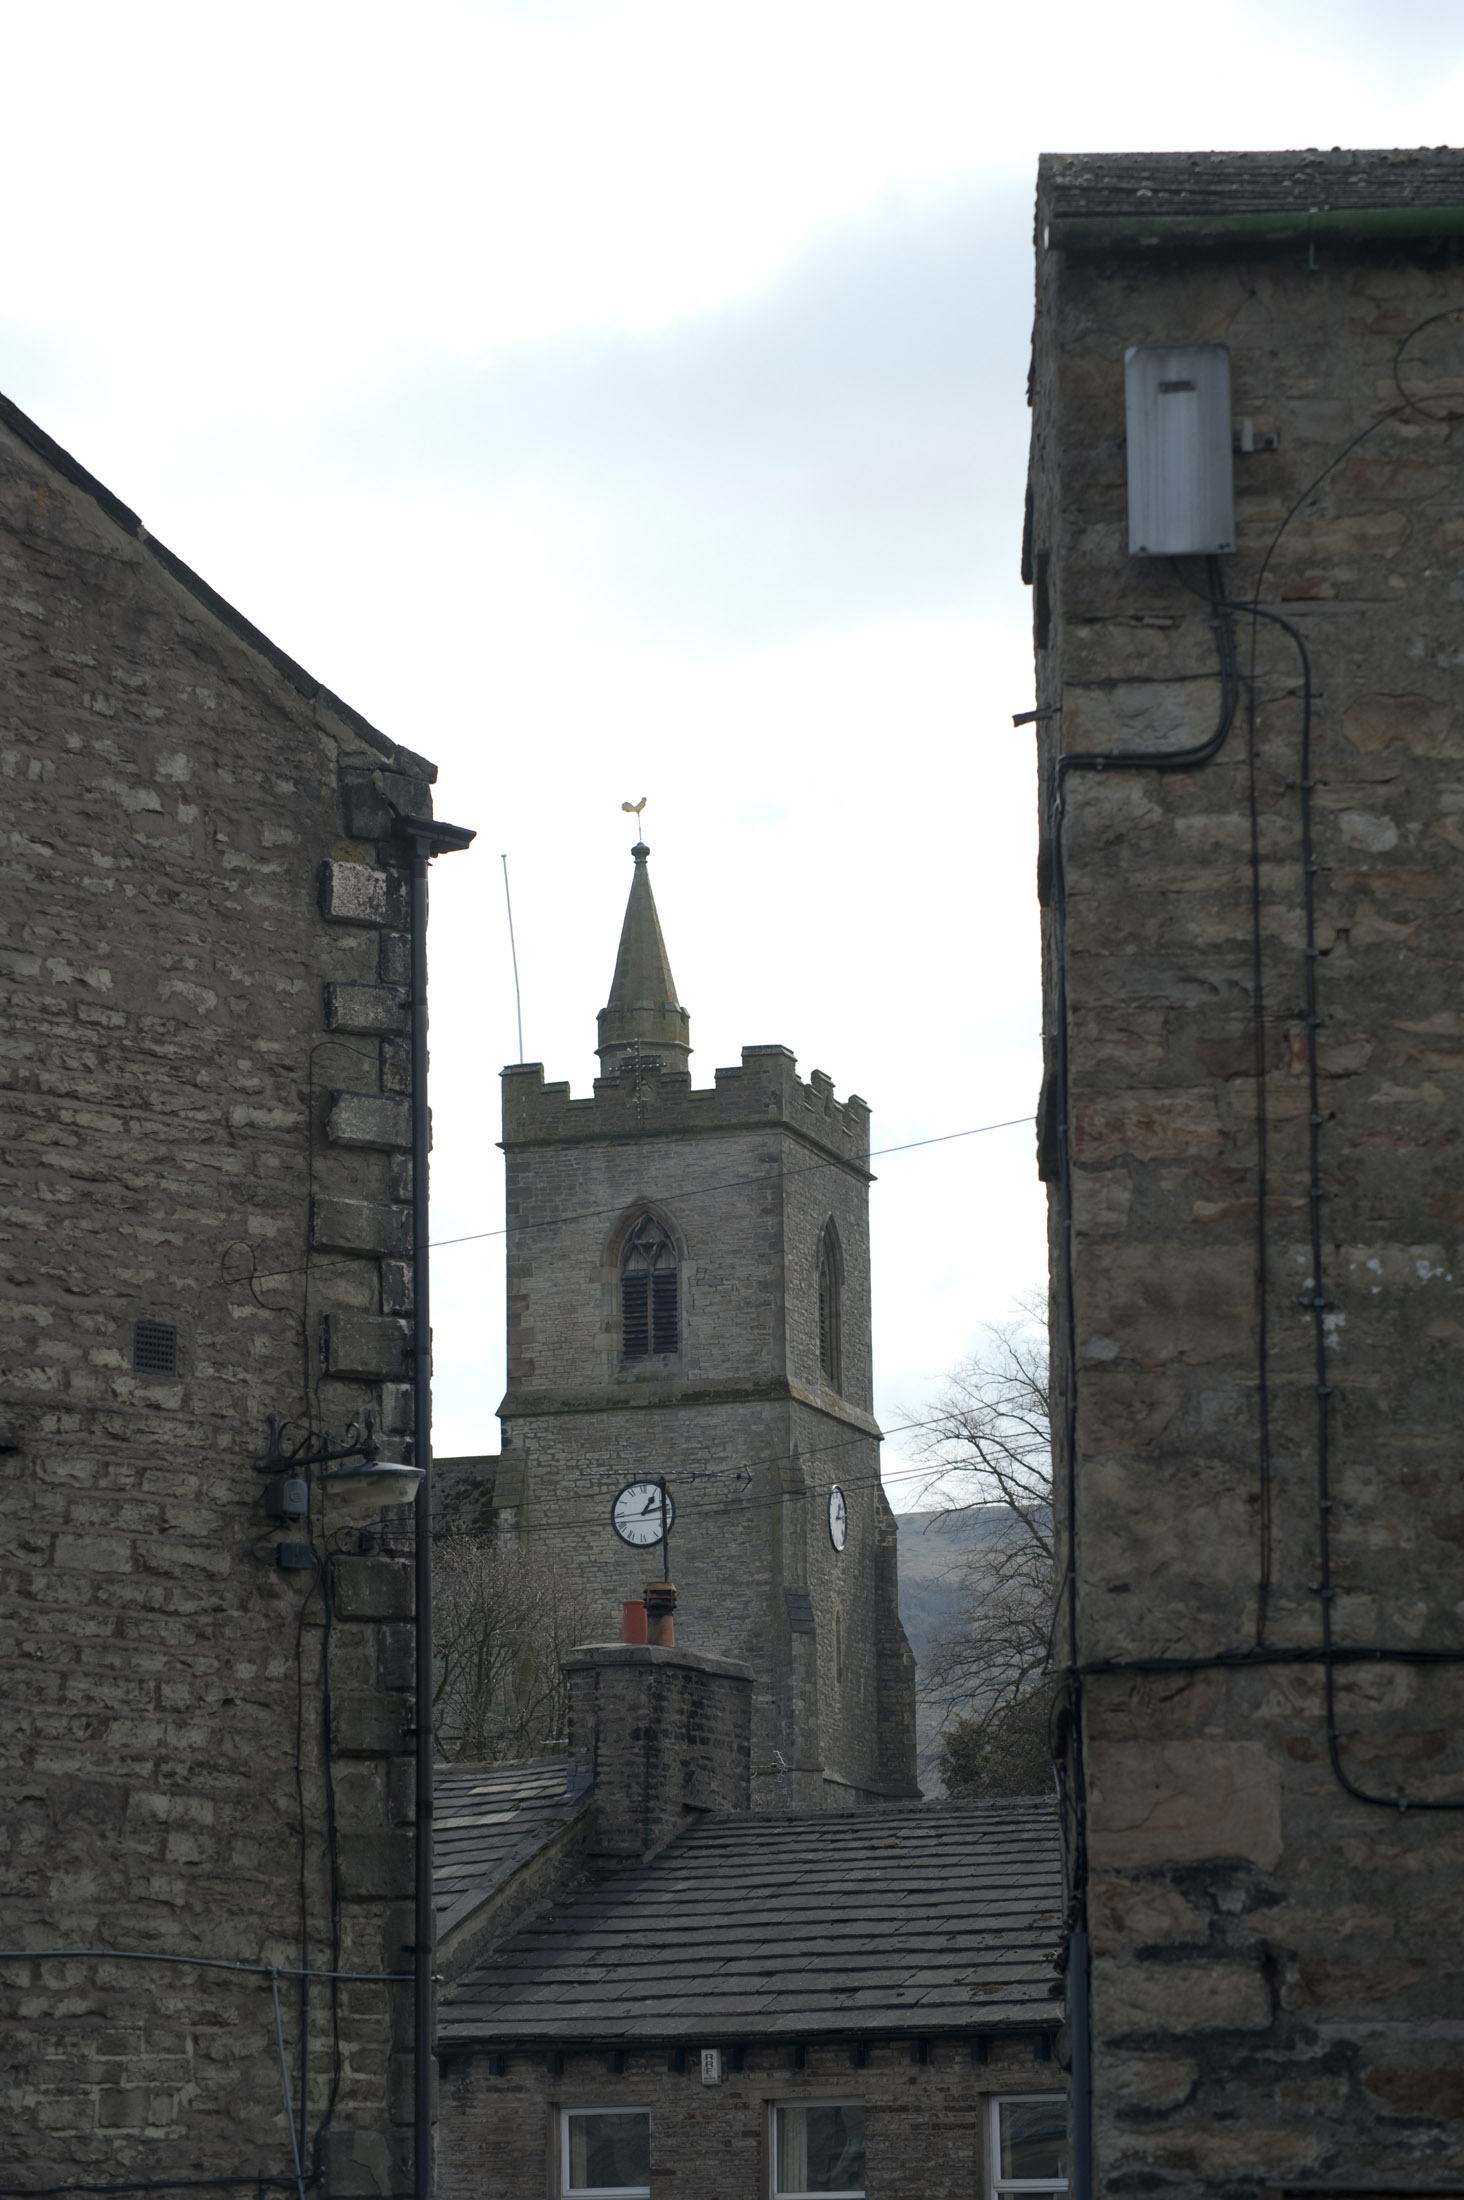 church tower in the yorkshire village of hawes